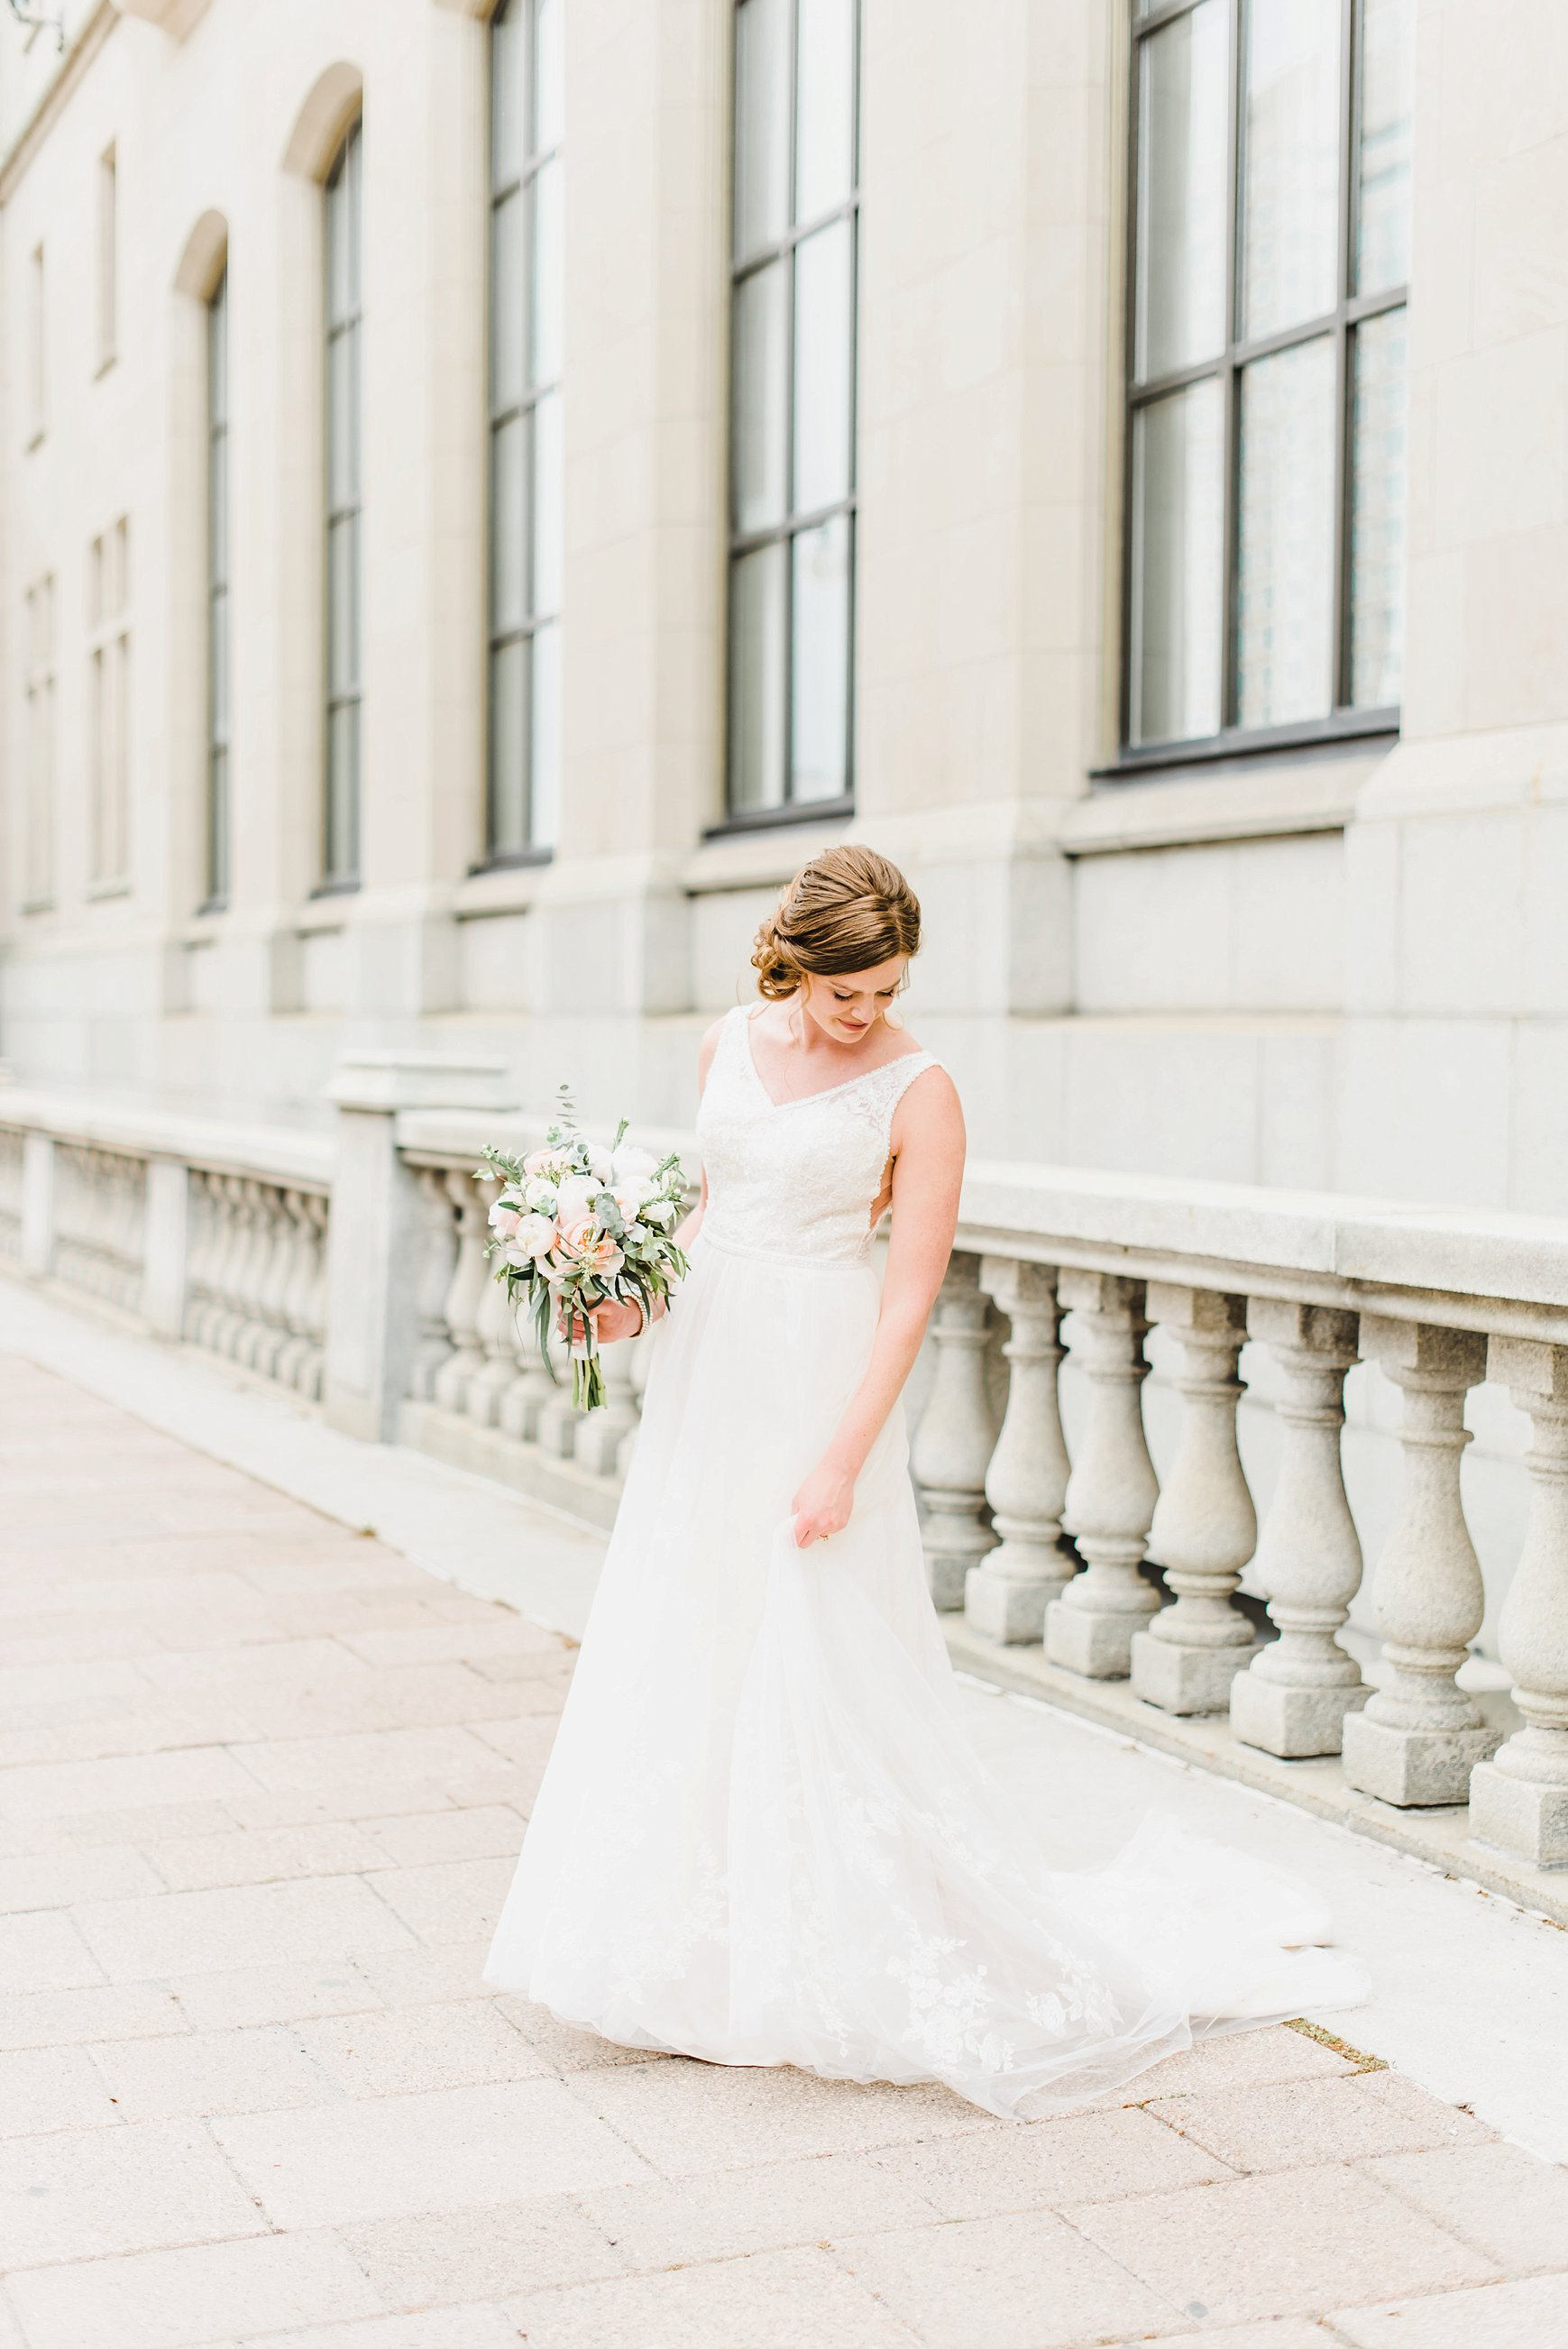 light airy indie fine art ottawa wedding photographer | Ali and Batoul Photography_0337.jpg